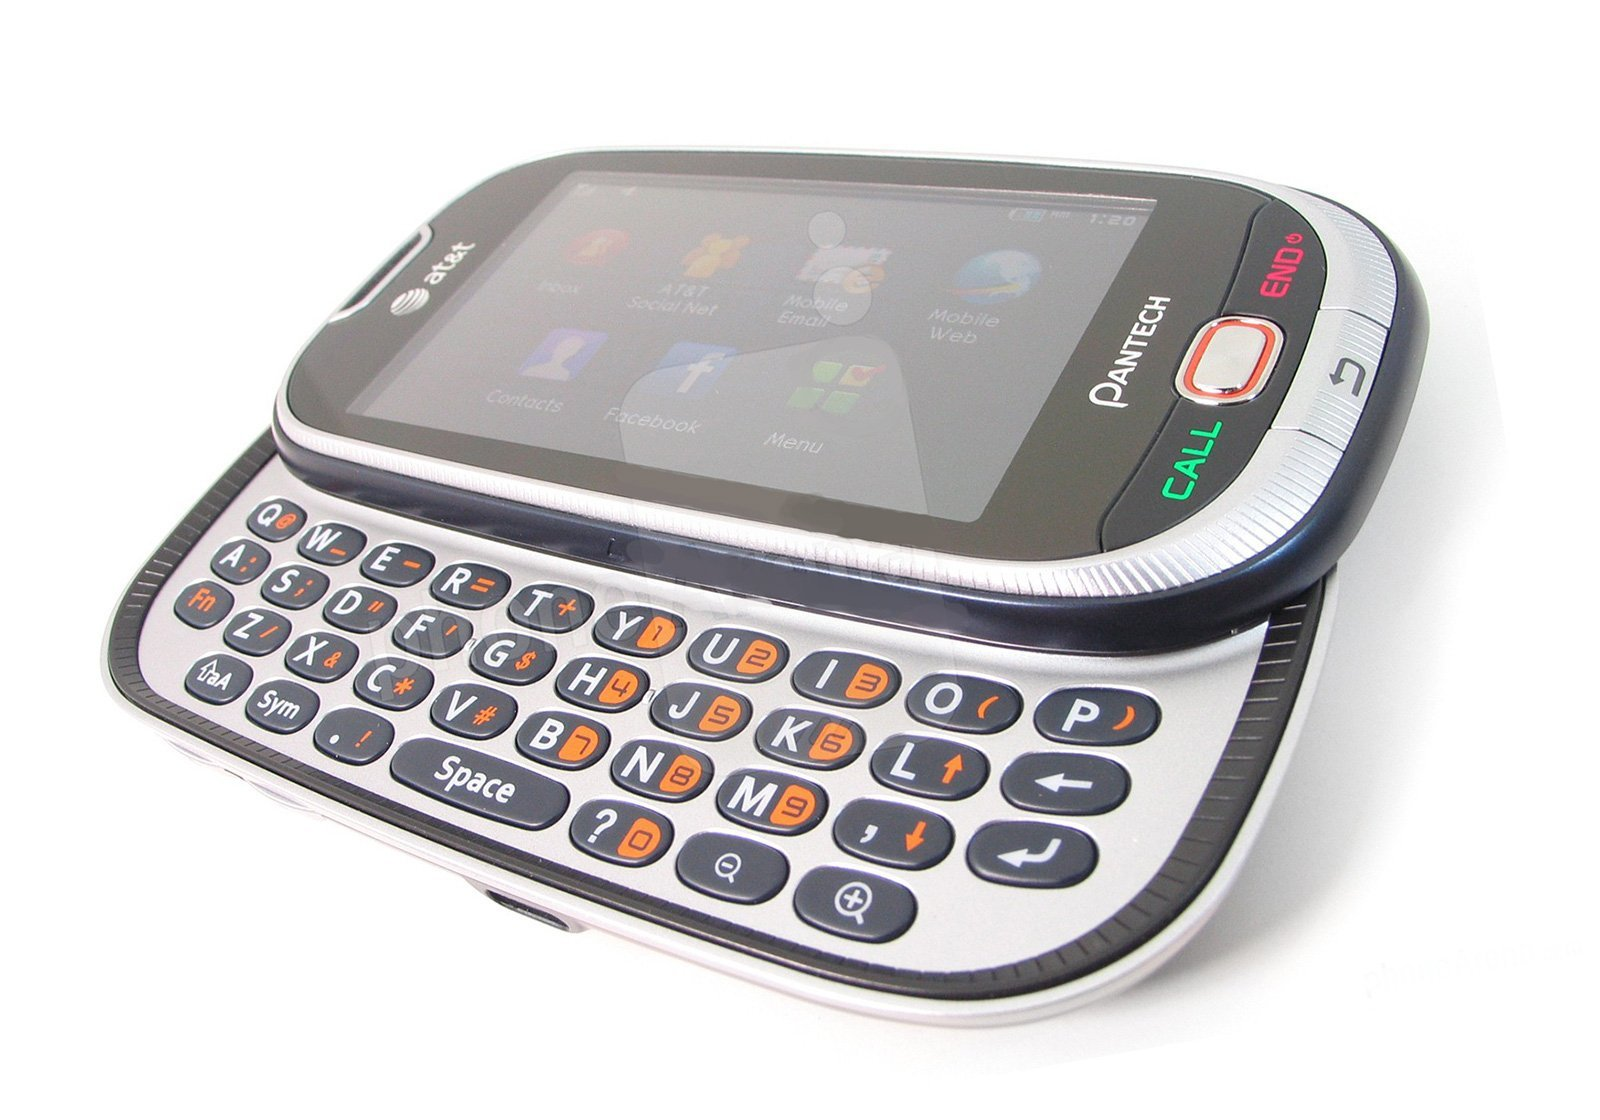 Unlocked P2020 Contract Keyboard Touchscreen